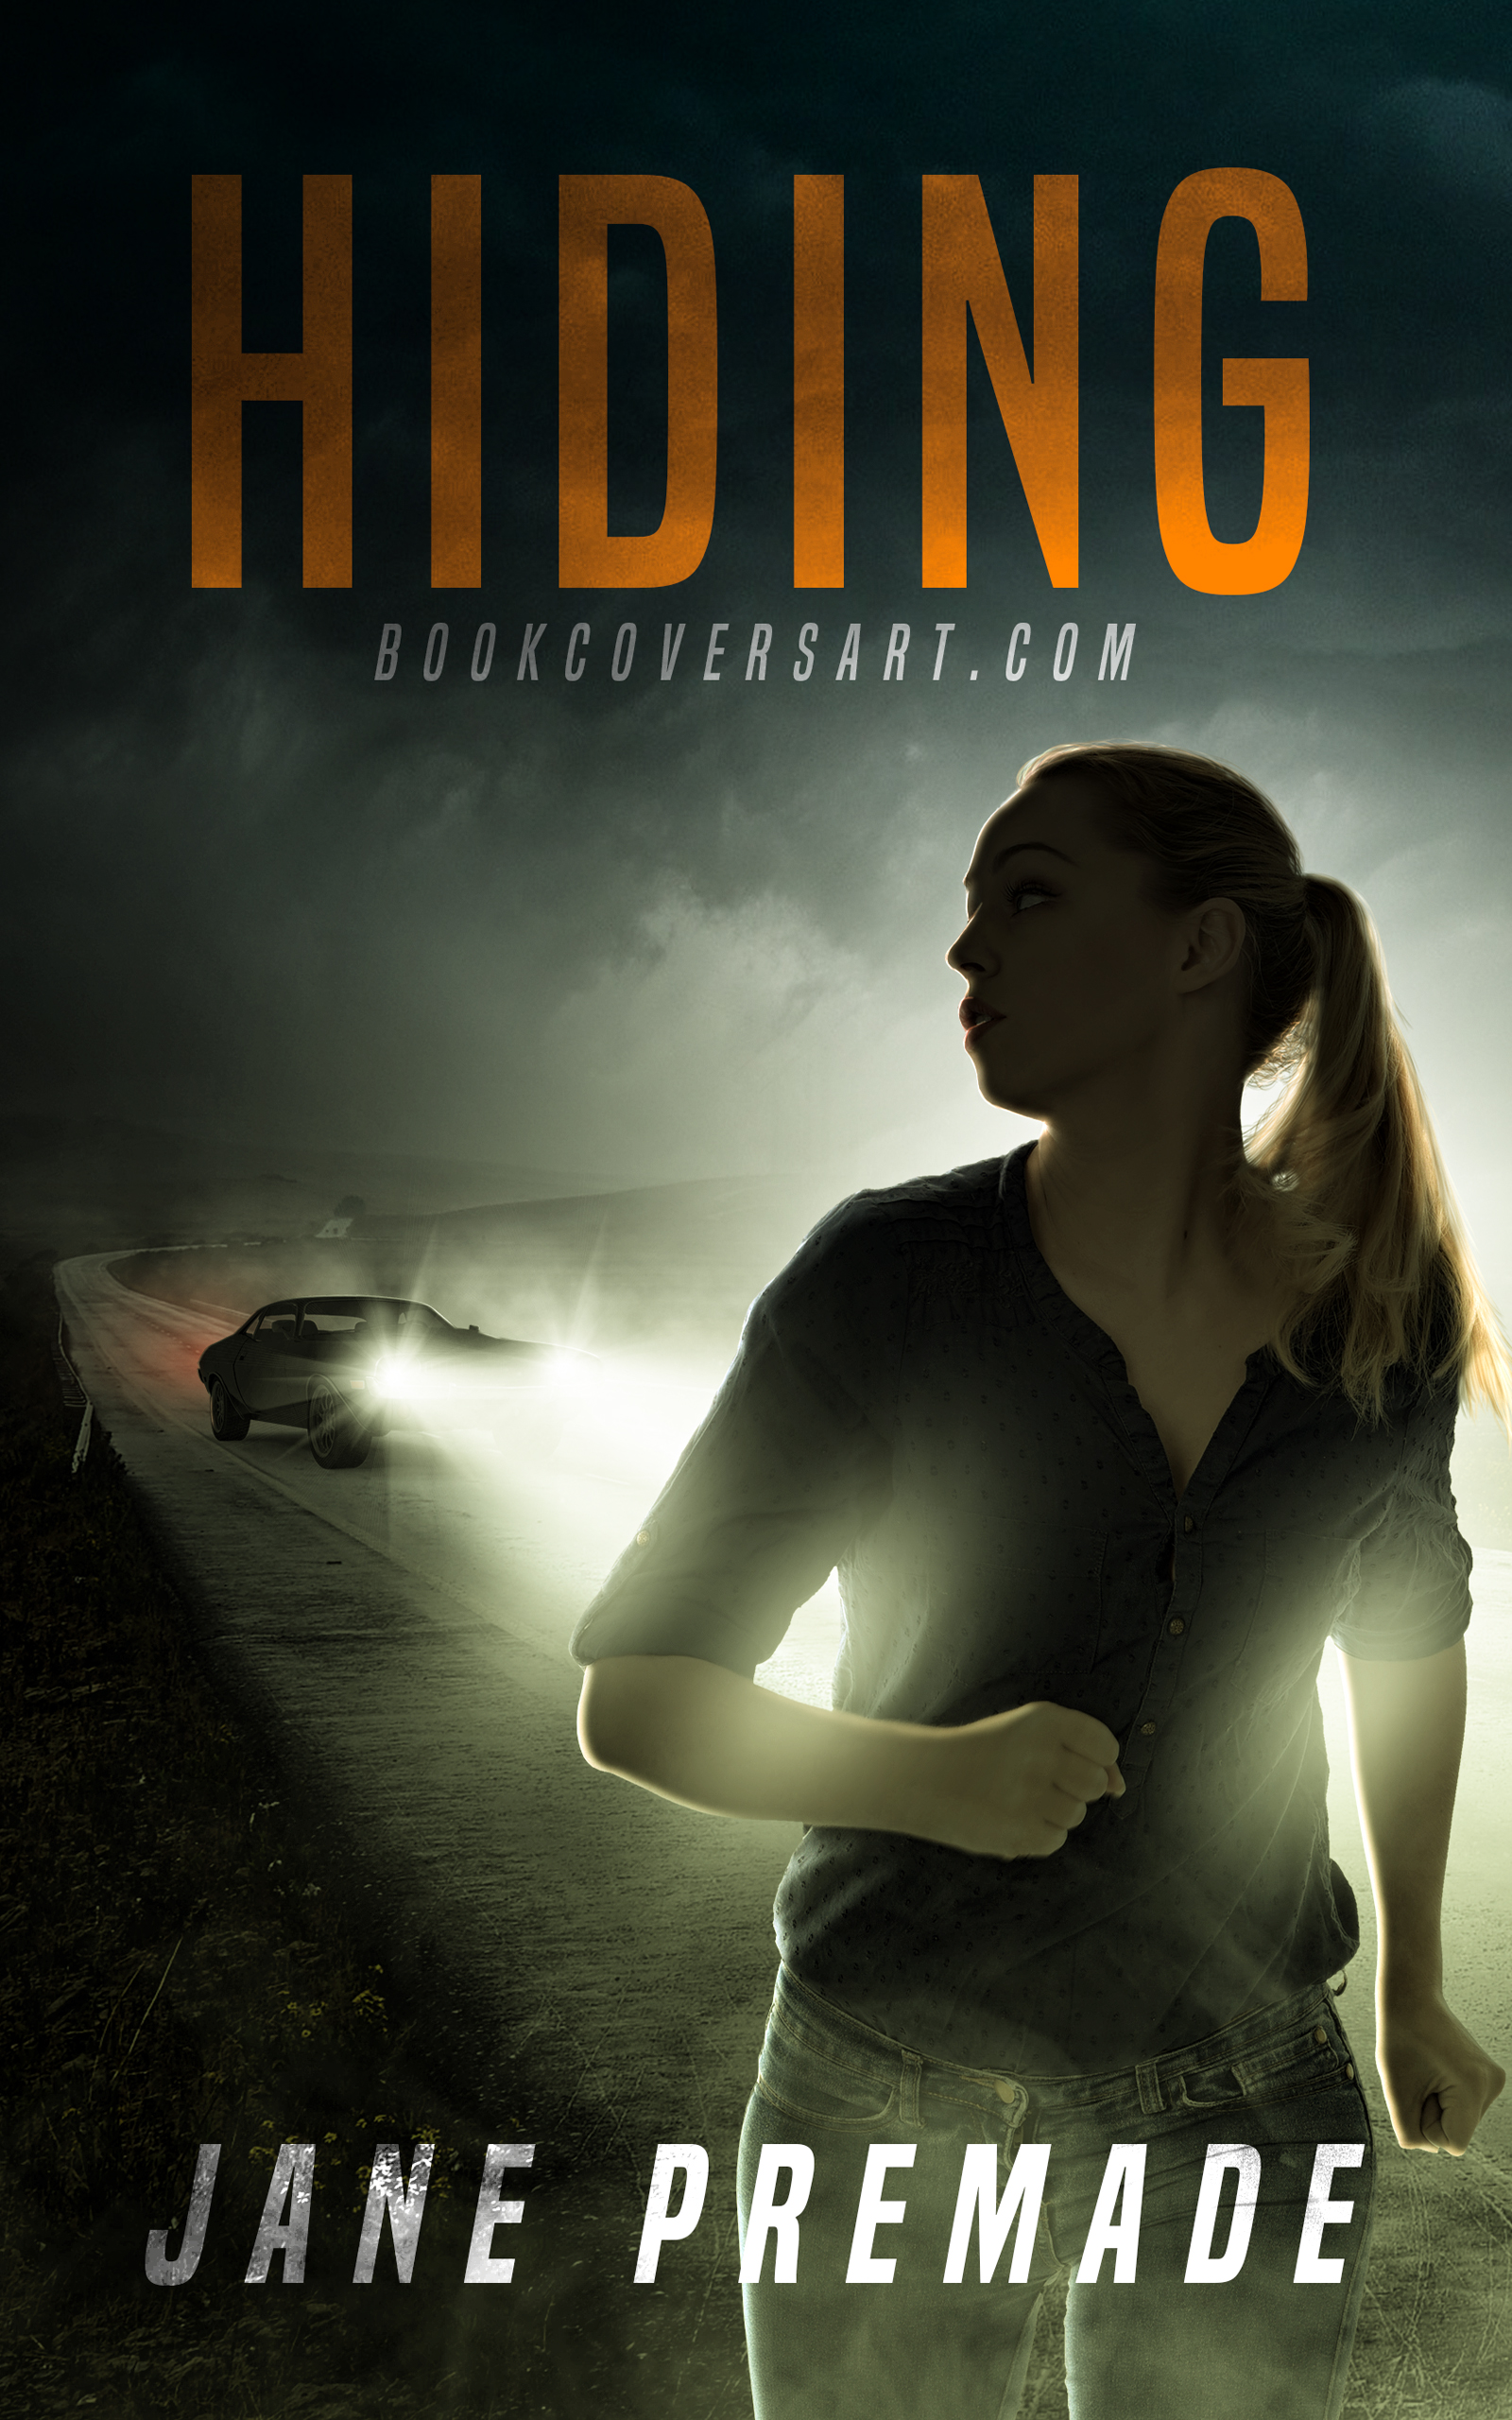 Mystery Thriller Premade Book Cover